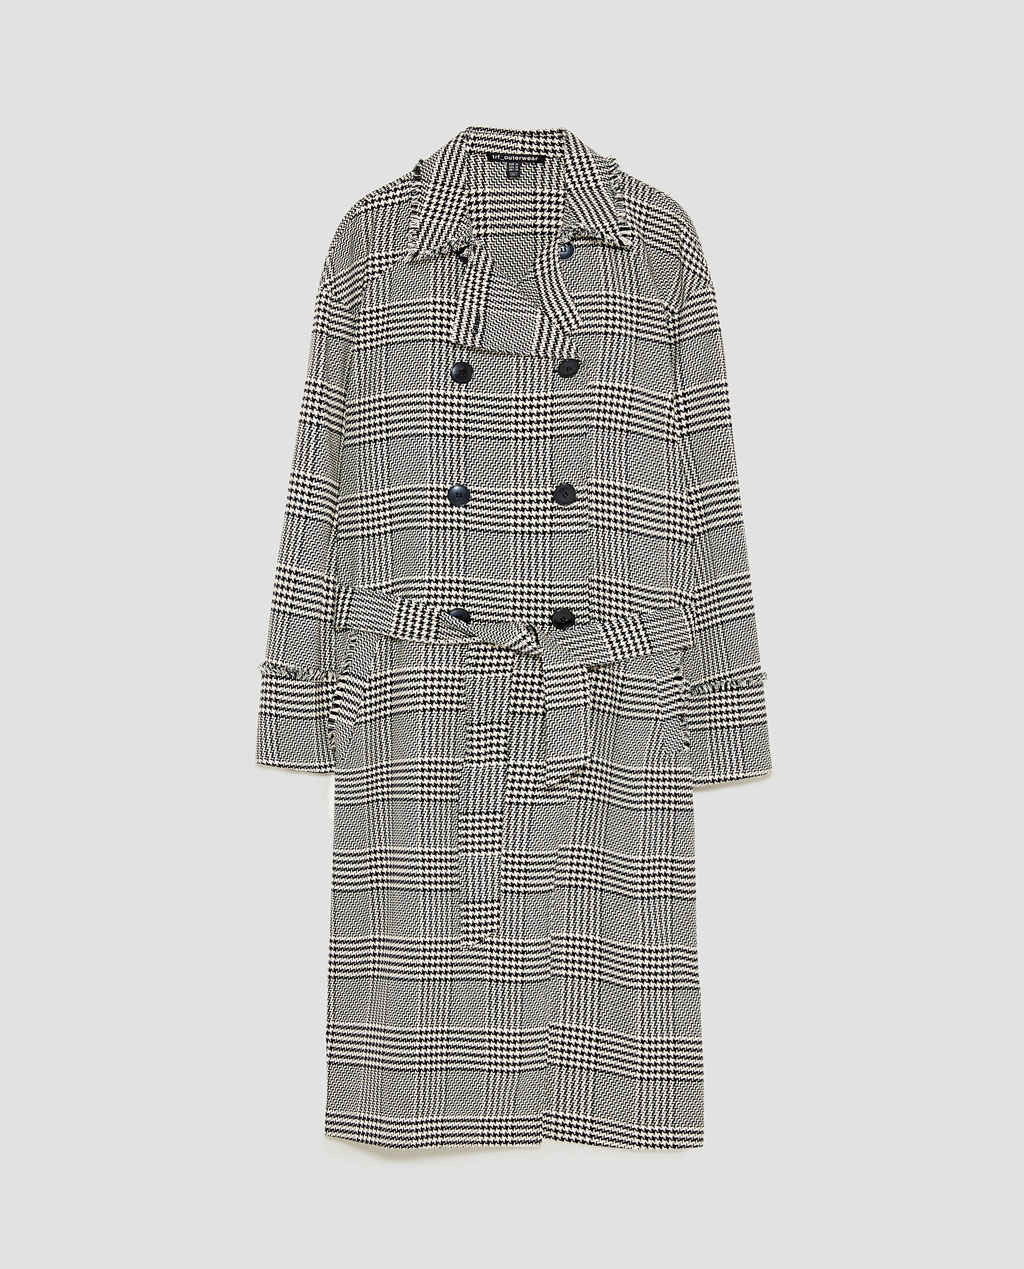 I usually pair contrasting scales of checks but there is something about this matching check on check look that I find quite striking. Wear the coat draped over the suit for lots of drama, properly buttoned over jeans or slightly buttoned with scrunched sleeves over the knit for a bit of nonchalance.